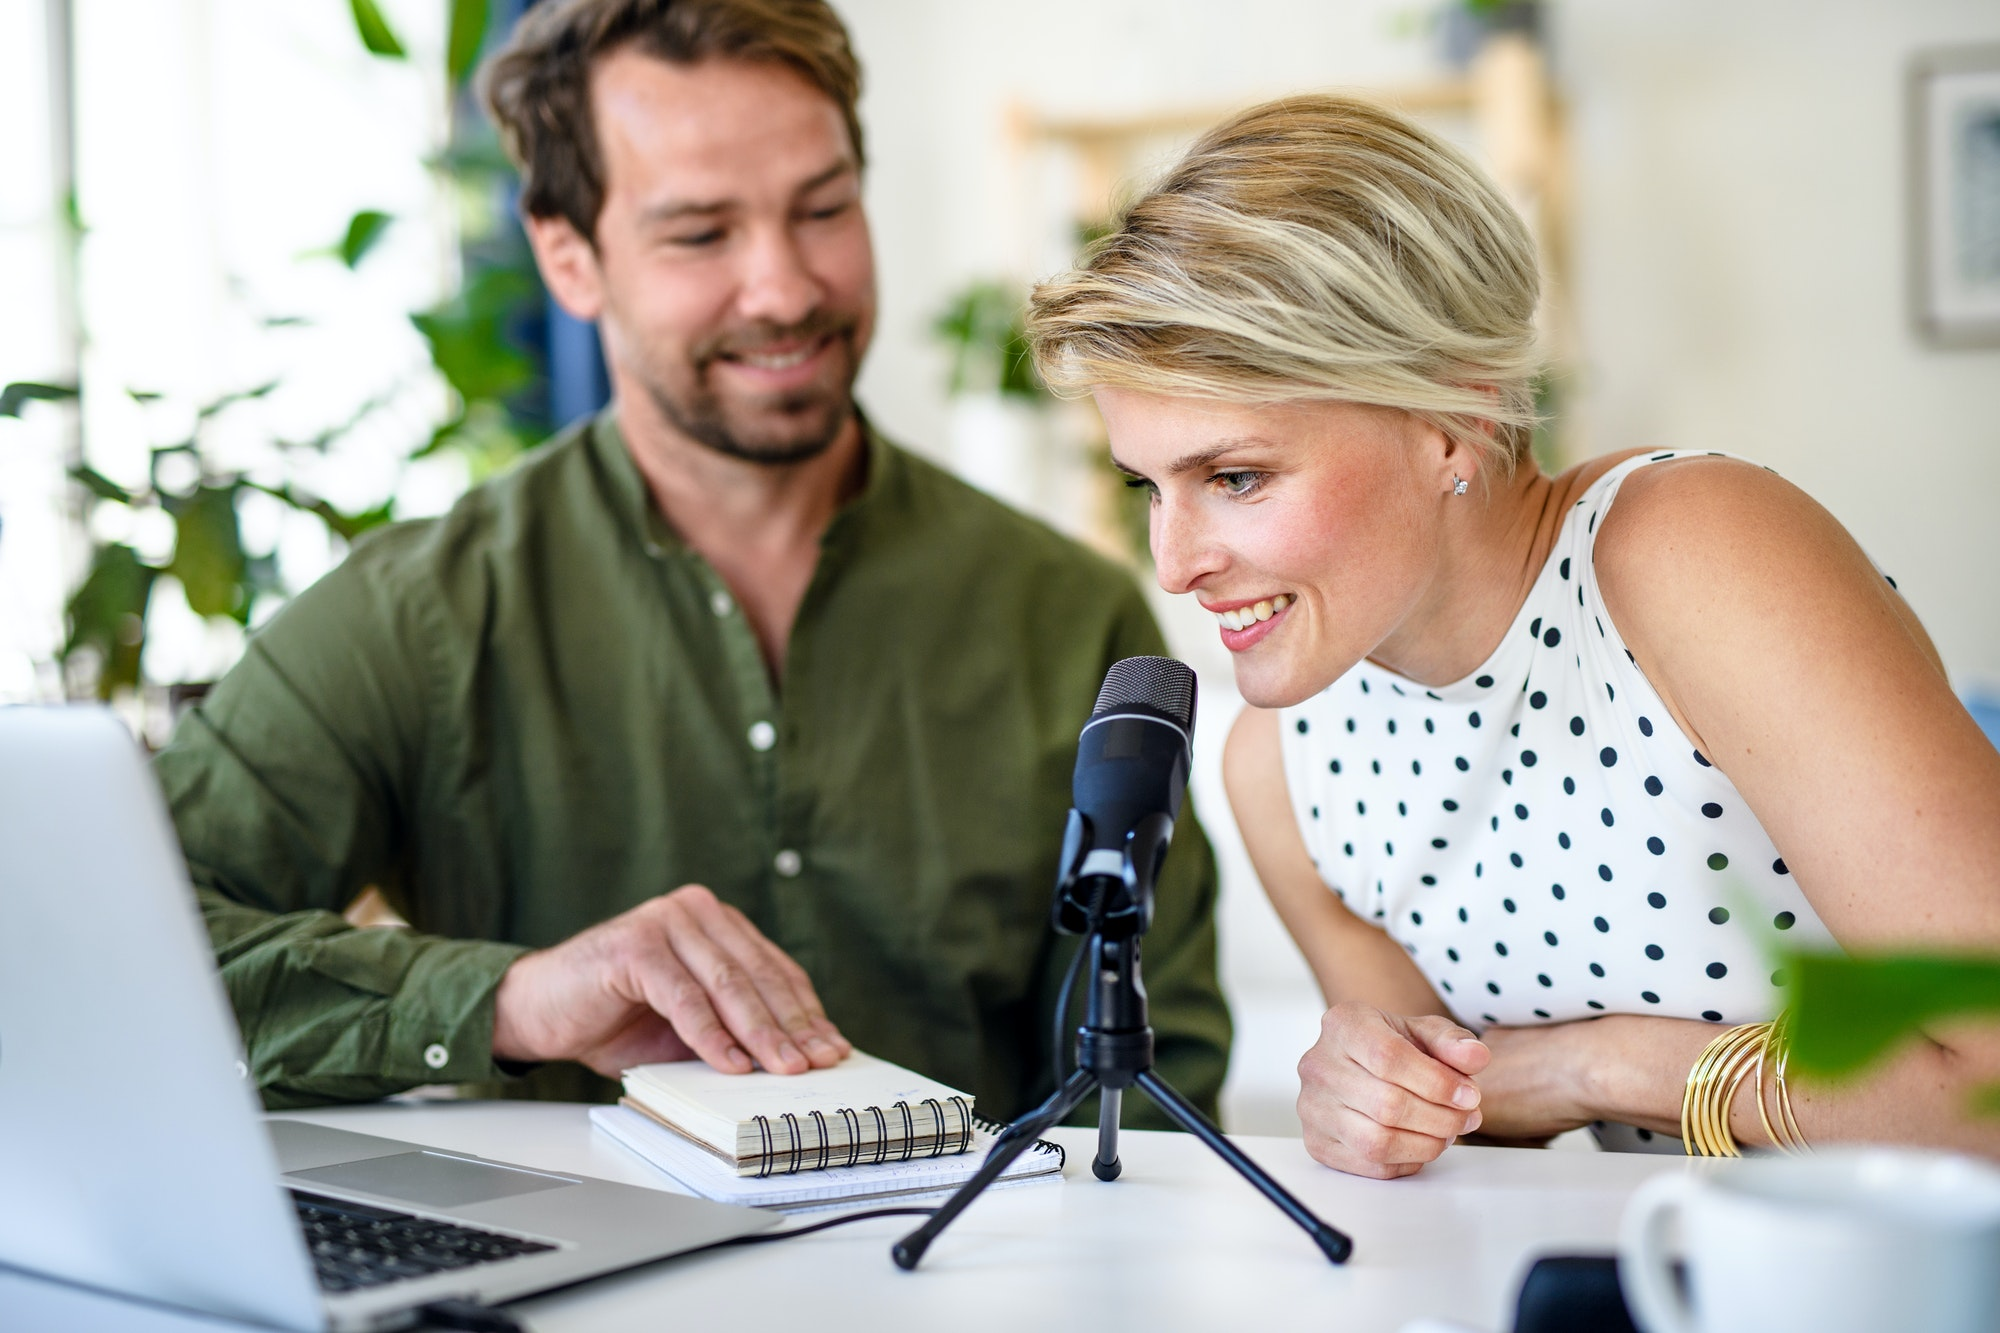 Happy couple with microphone having video call on laptop indoors at home, Podcast